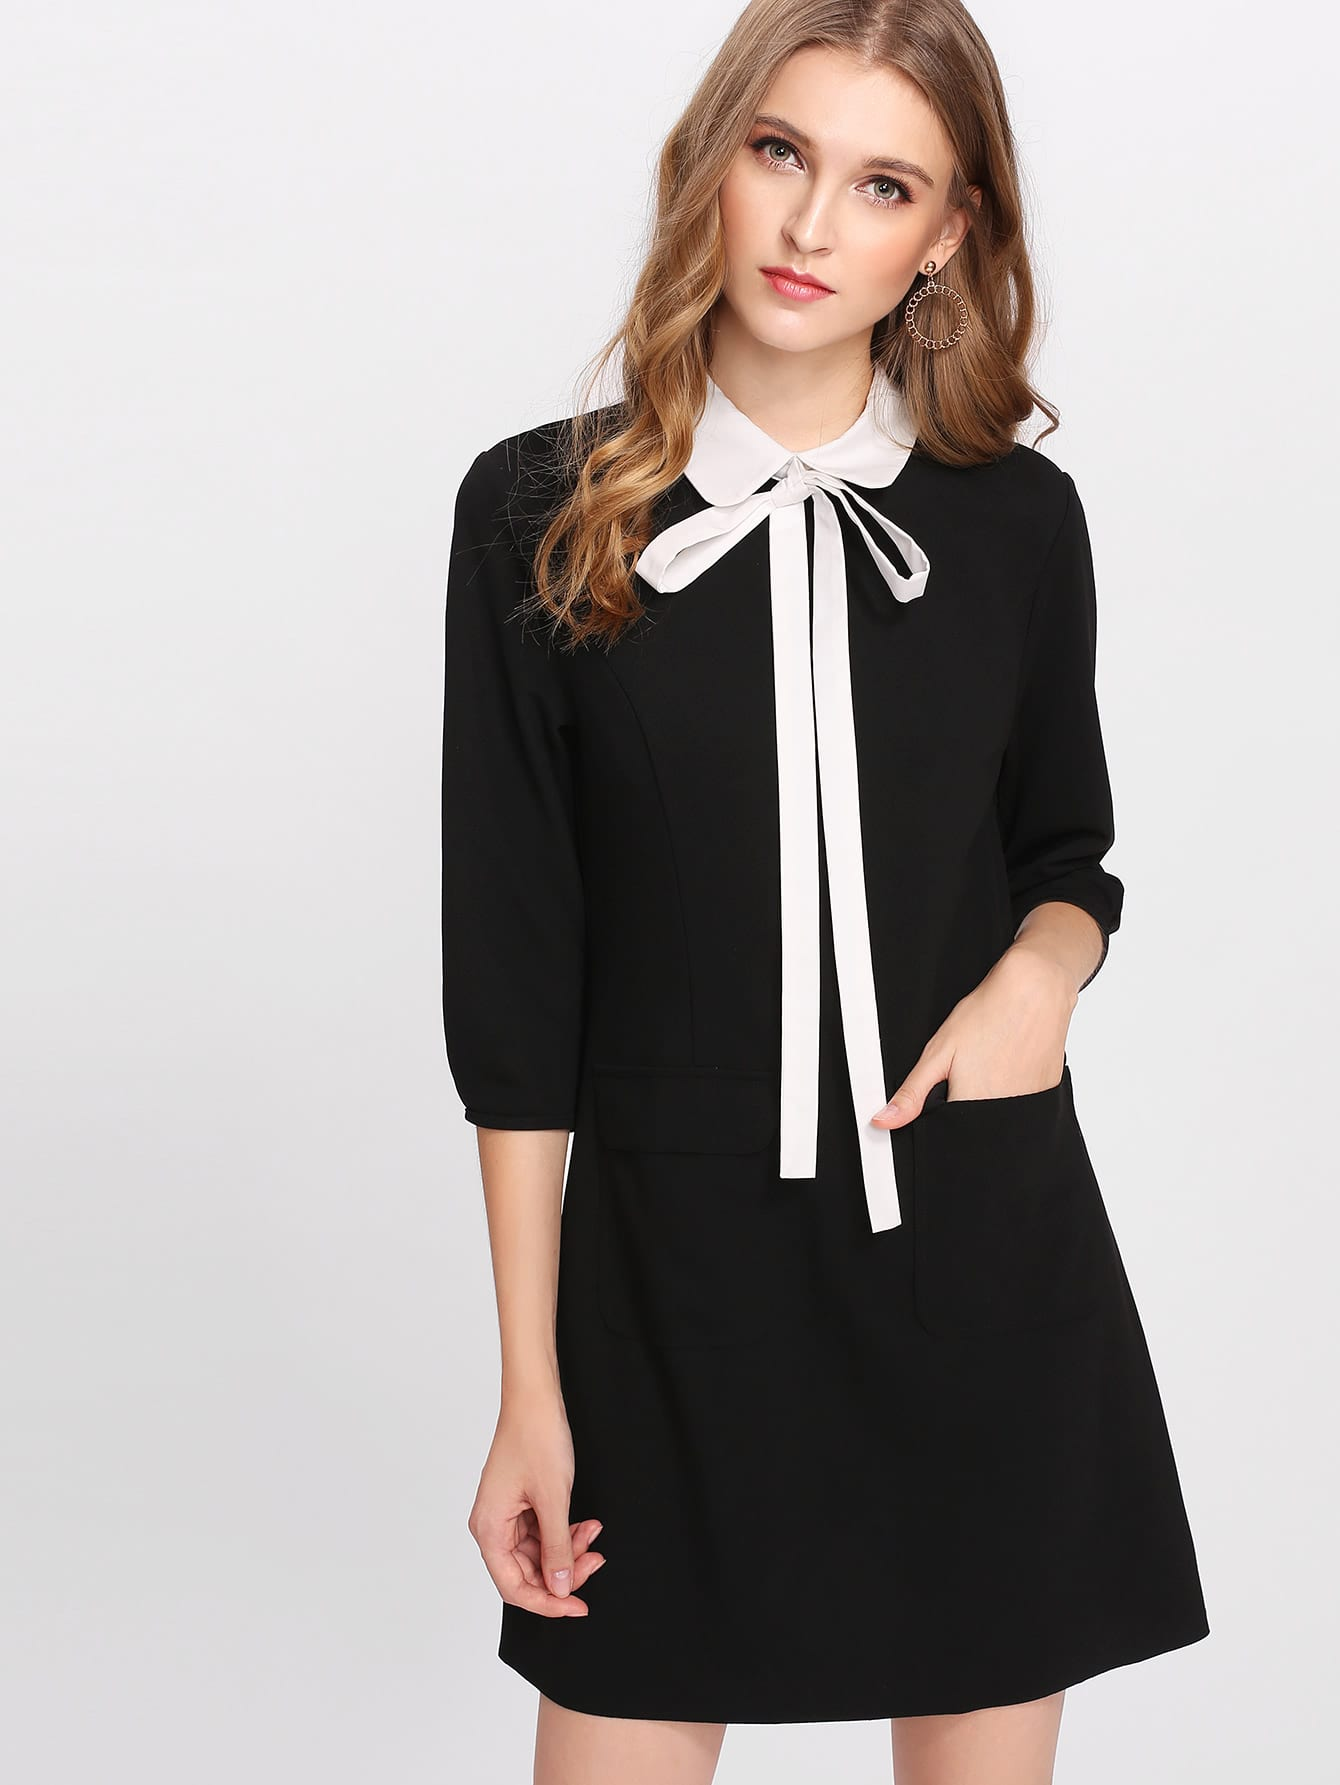 Contrast Tied Collar Pocket Detail Dress contrast collar bow tied detail striped dress